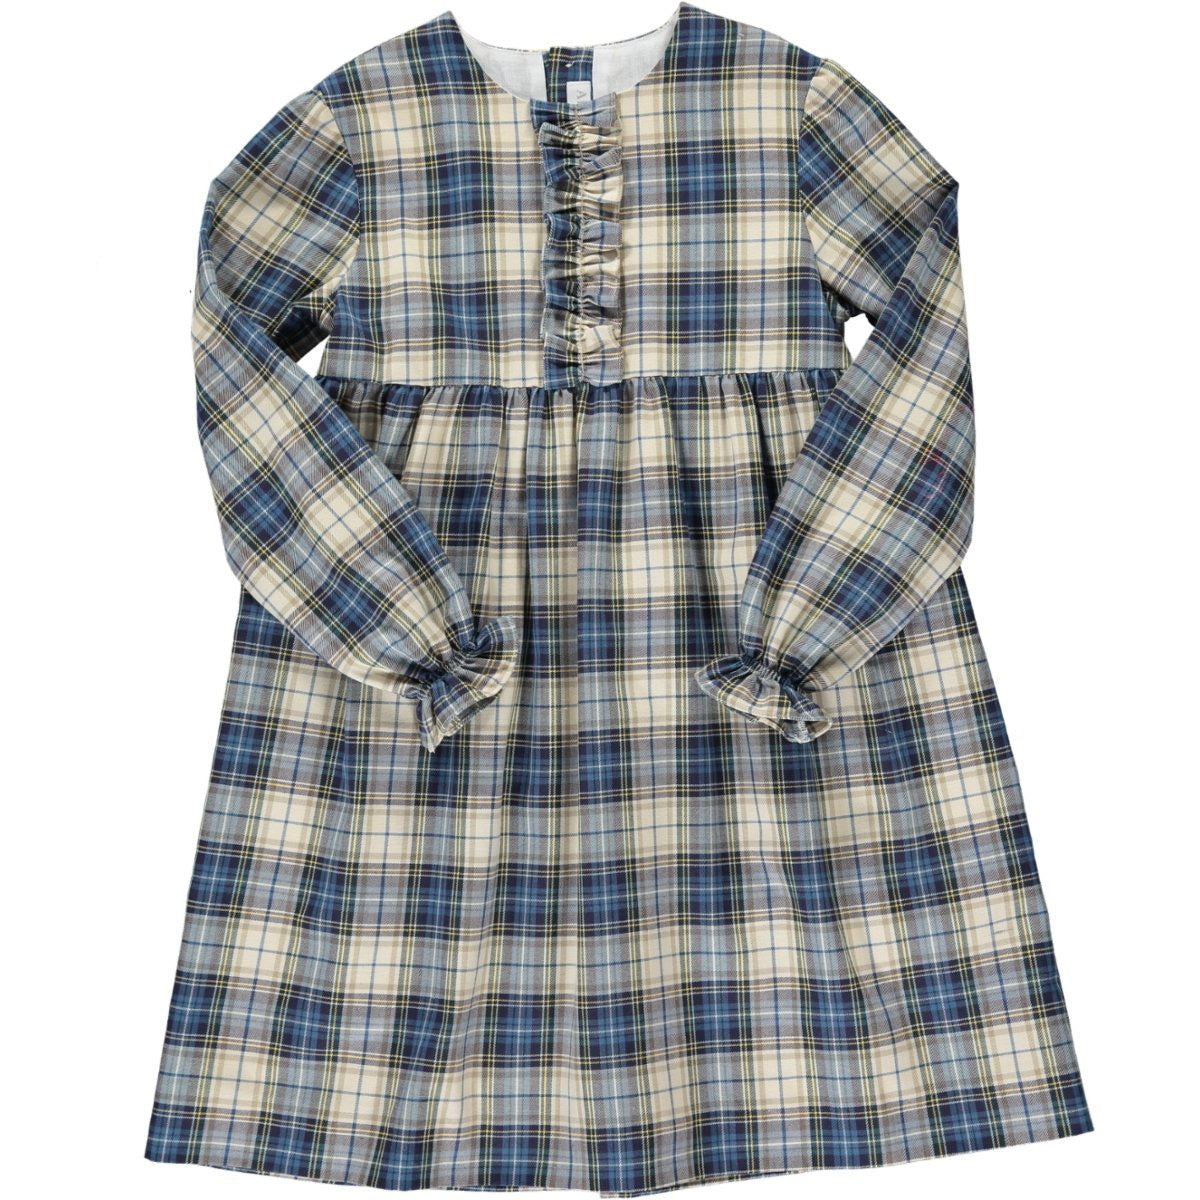 Leila Dress Blue/Beige Tartan